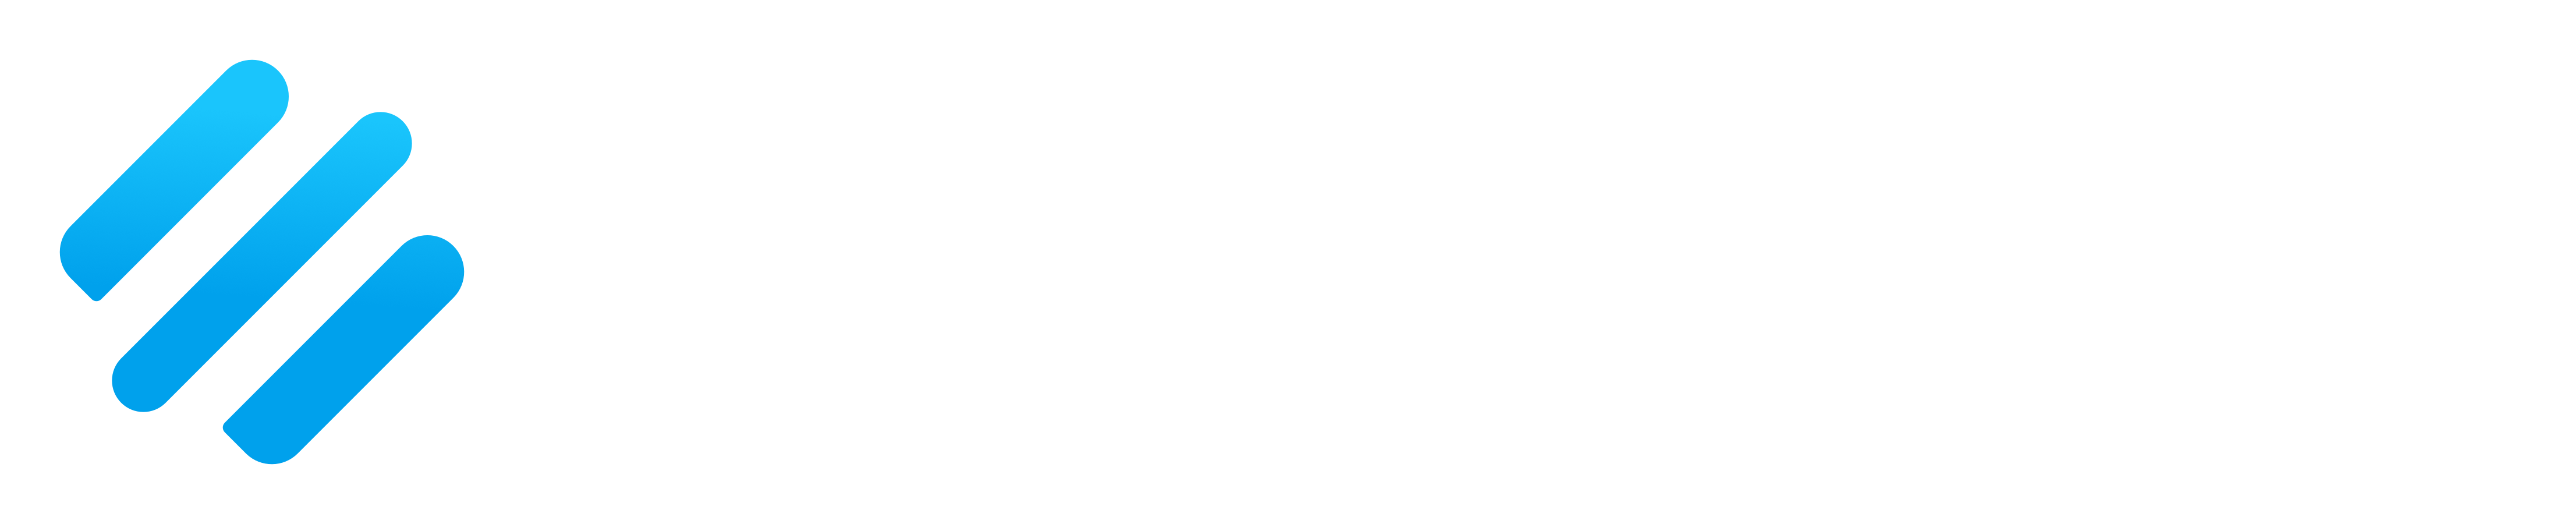 2020-09-09: ETERBASE - HOT WALLETS COMPROMISED – OFFICIAL ANNOUNCEMENT